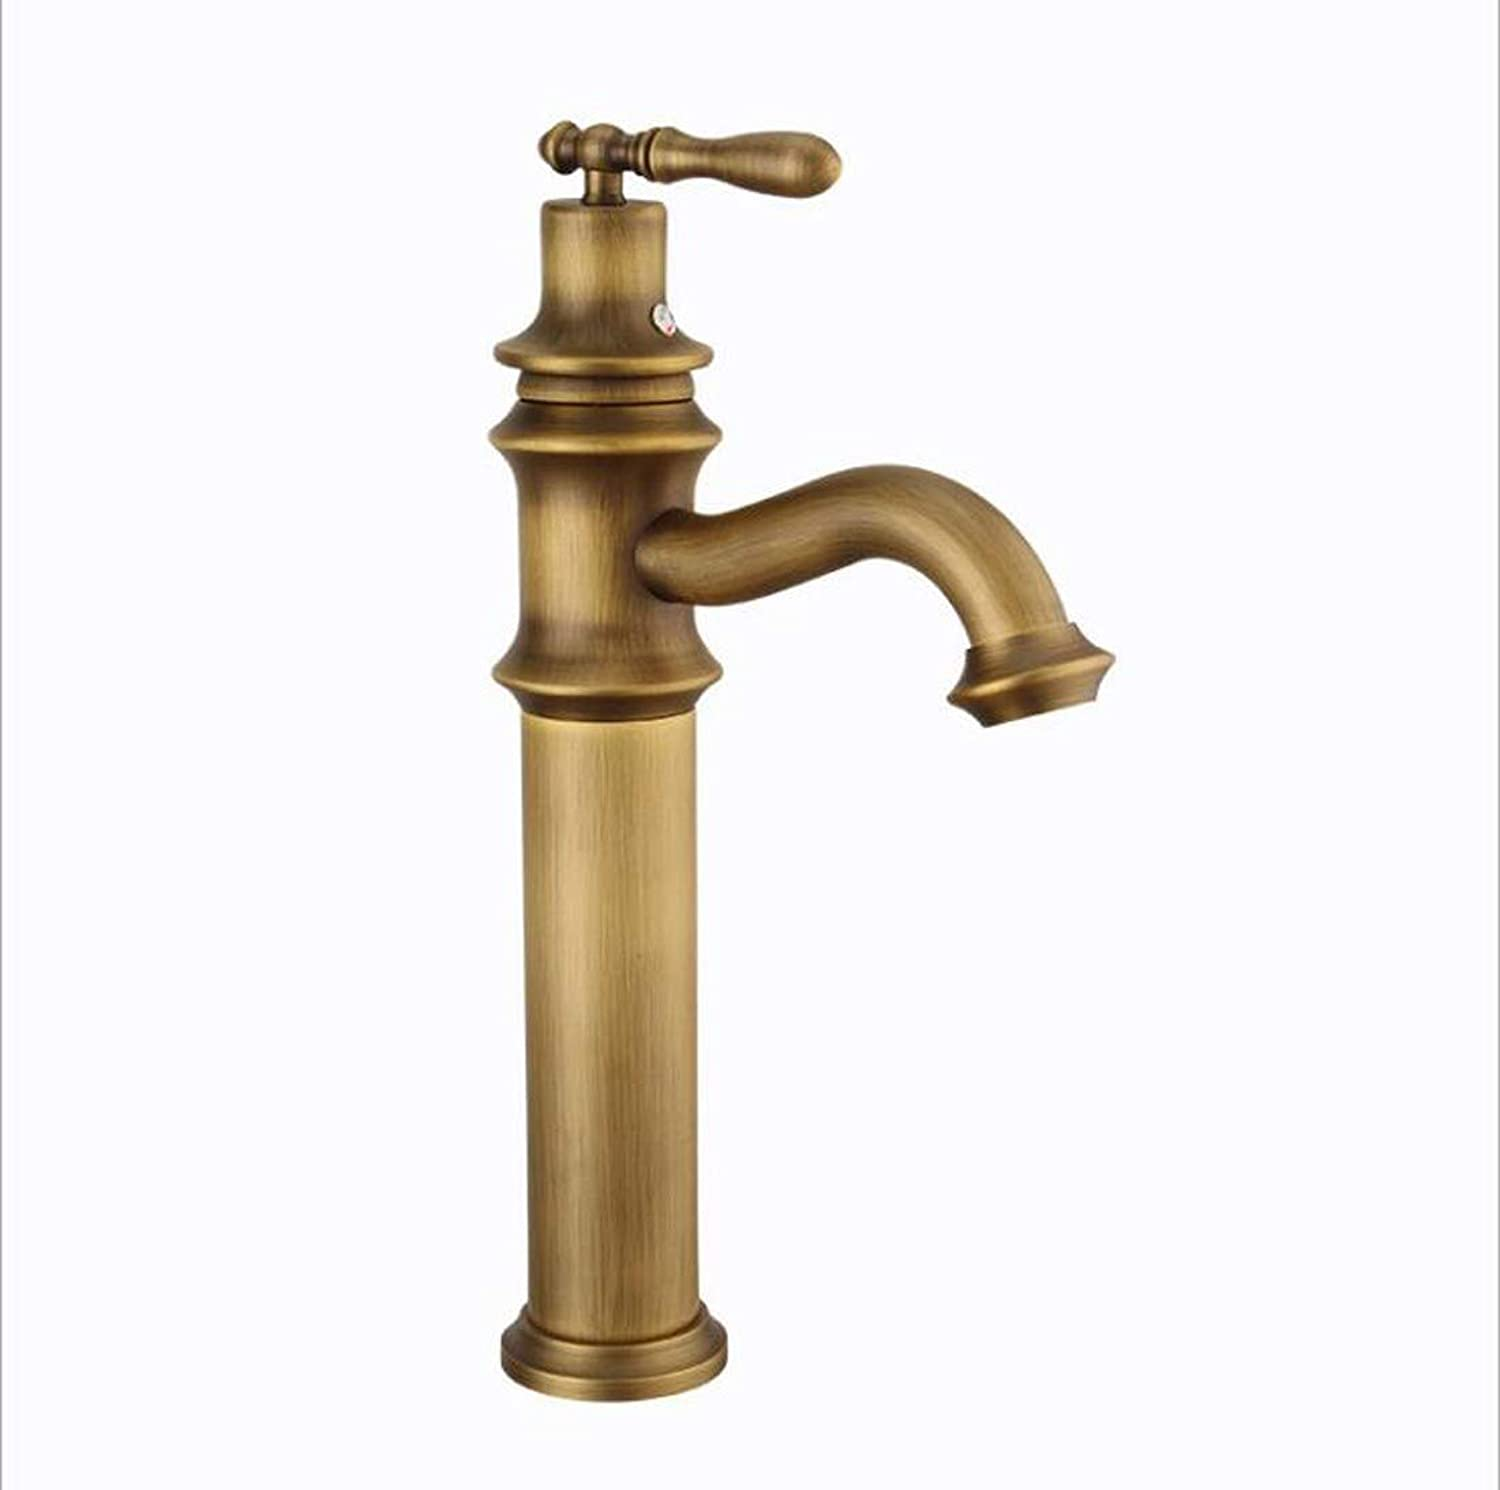 KAIDEFI European Style All Copper Antique Bathroom Sink Faucet Cold And Hot Mixing Faucet Retro Basin Faucet Creative Single Hole Table Basin Faucet